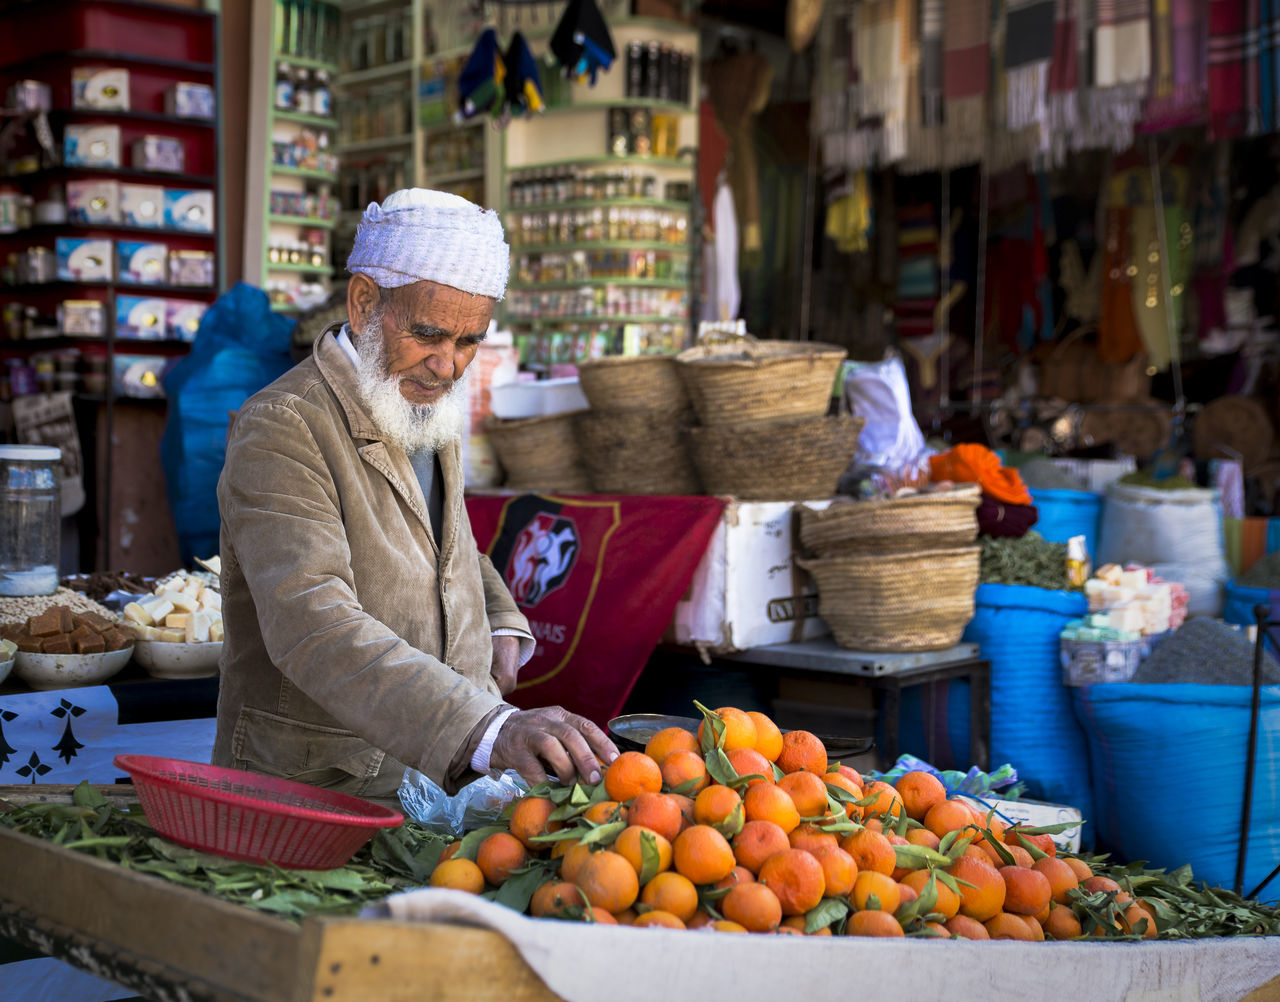 fruit, freshness, market, one person, food, food and drink, healthy eating, choice, market stall, retail, real people, outdoors, senior adult, vegetable, day, one man only, healthy lifestyle, men, adult, adults only, people